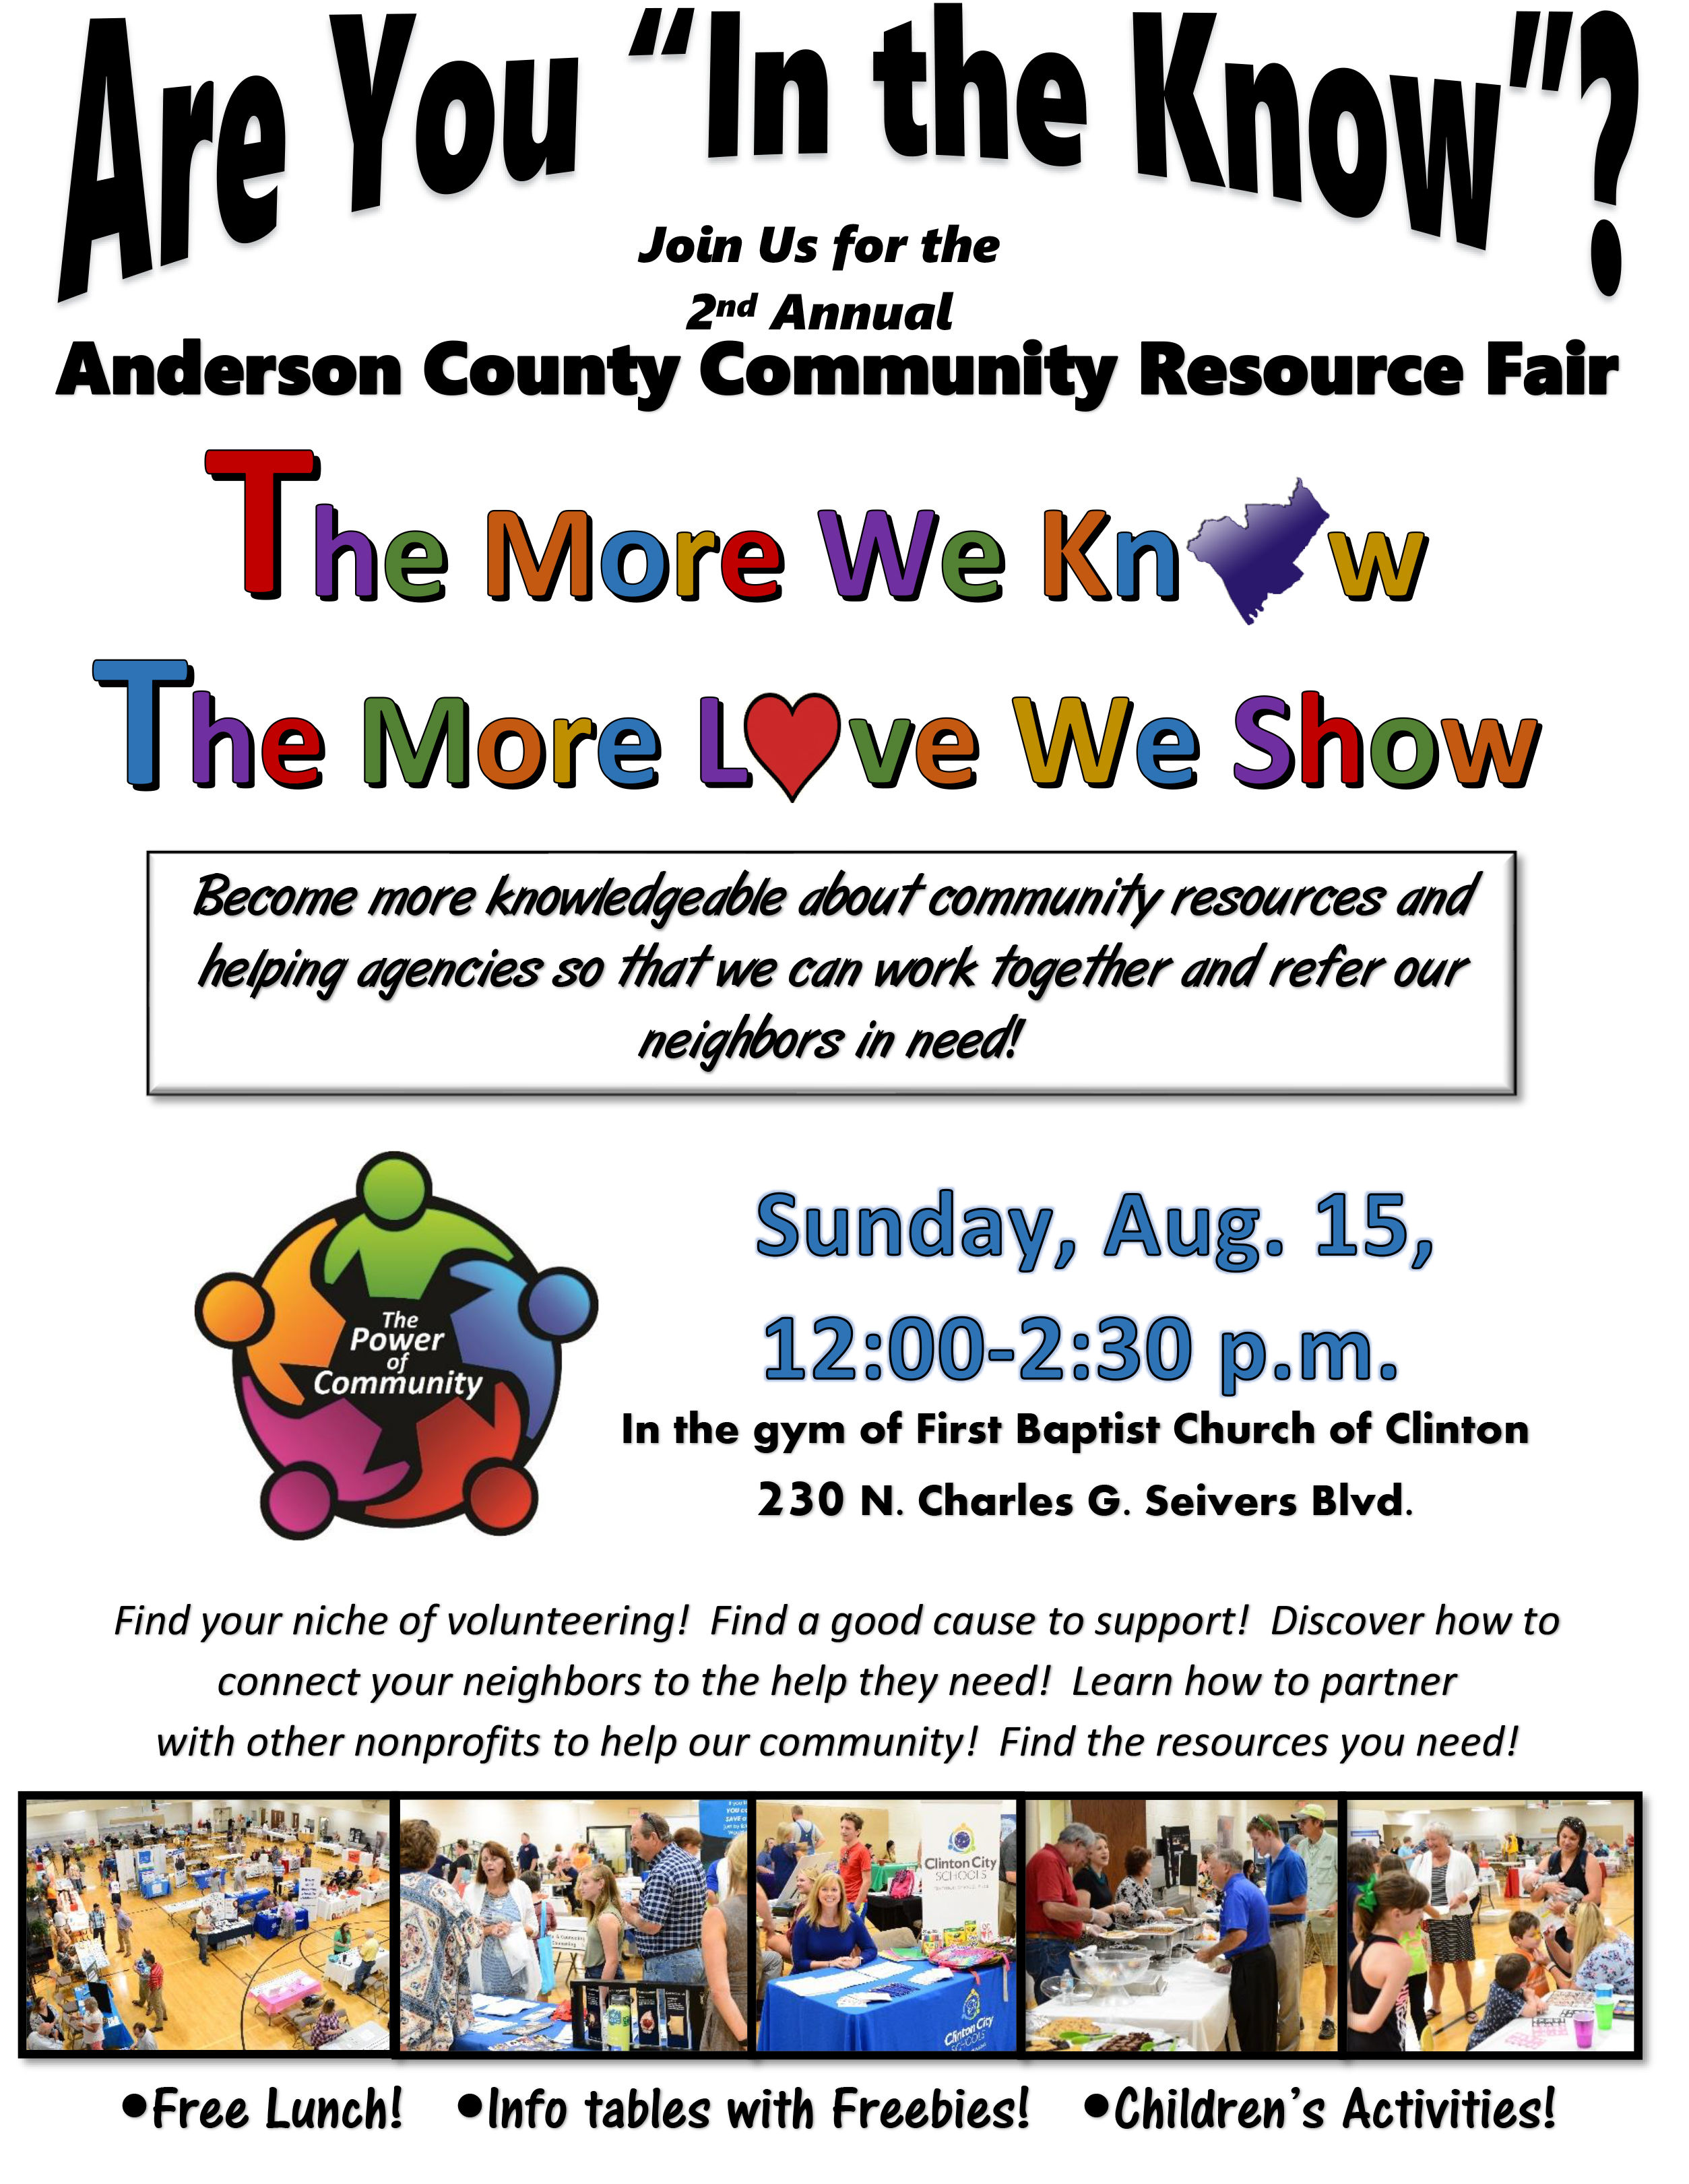 Anderson County Community Resource Fair